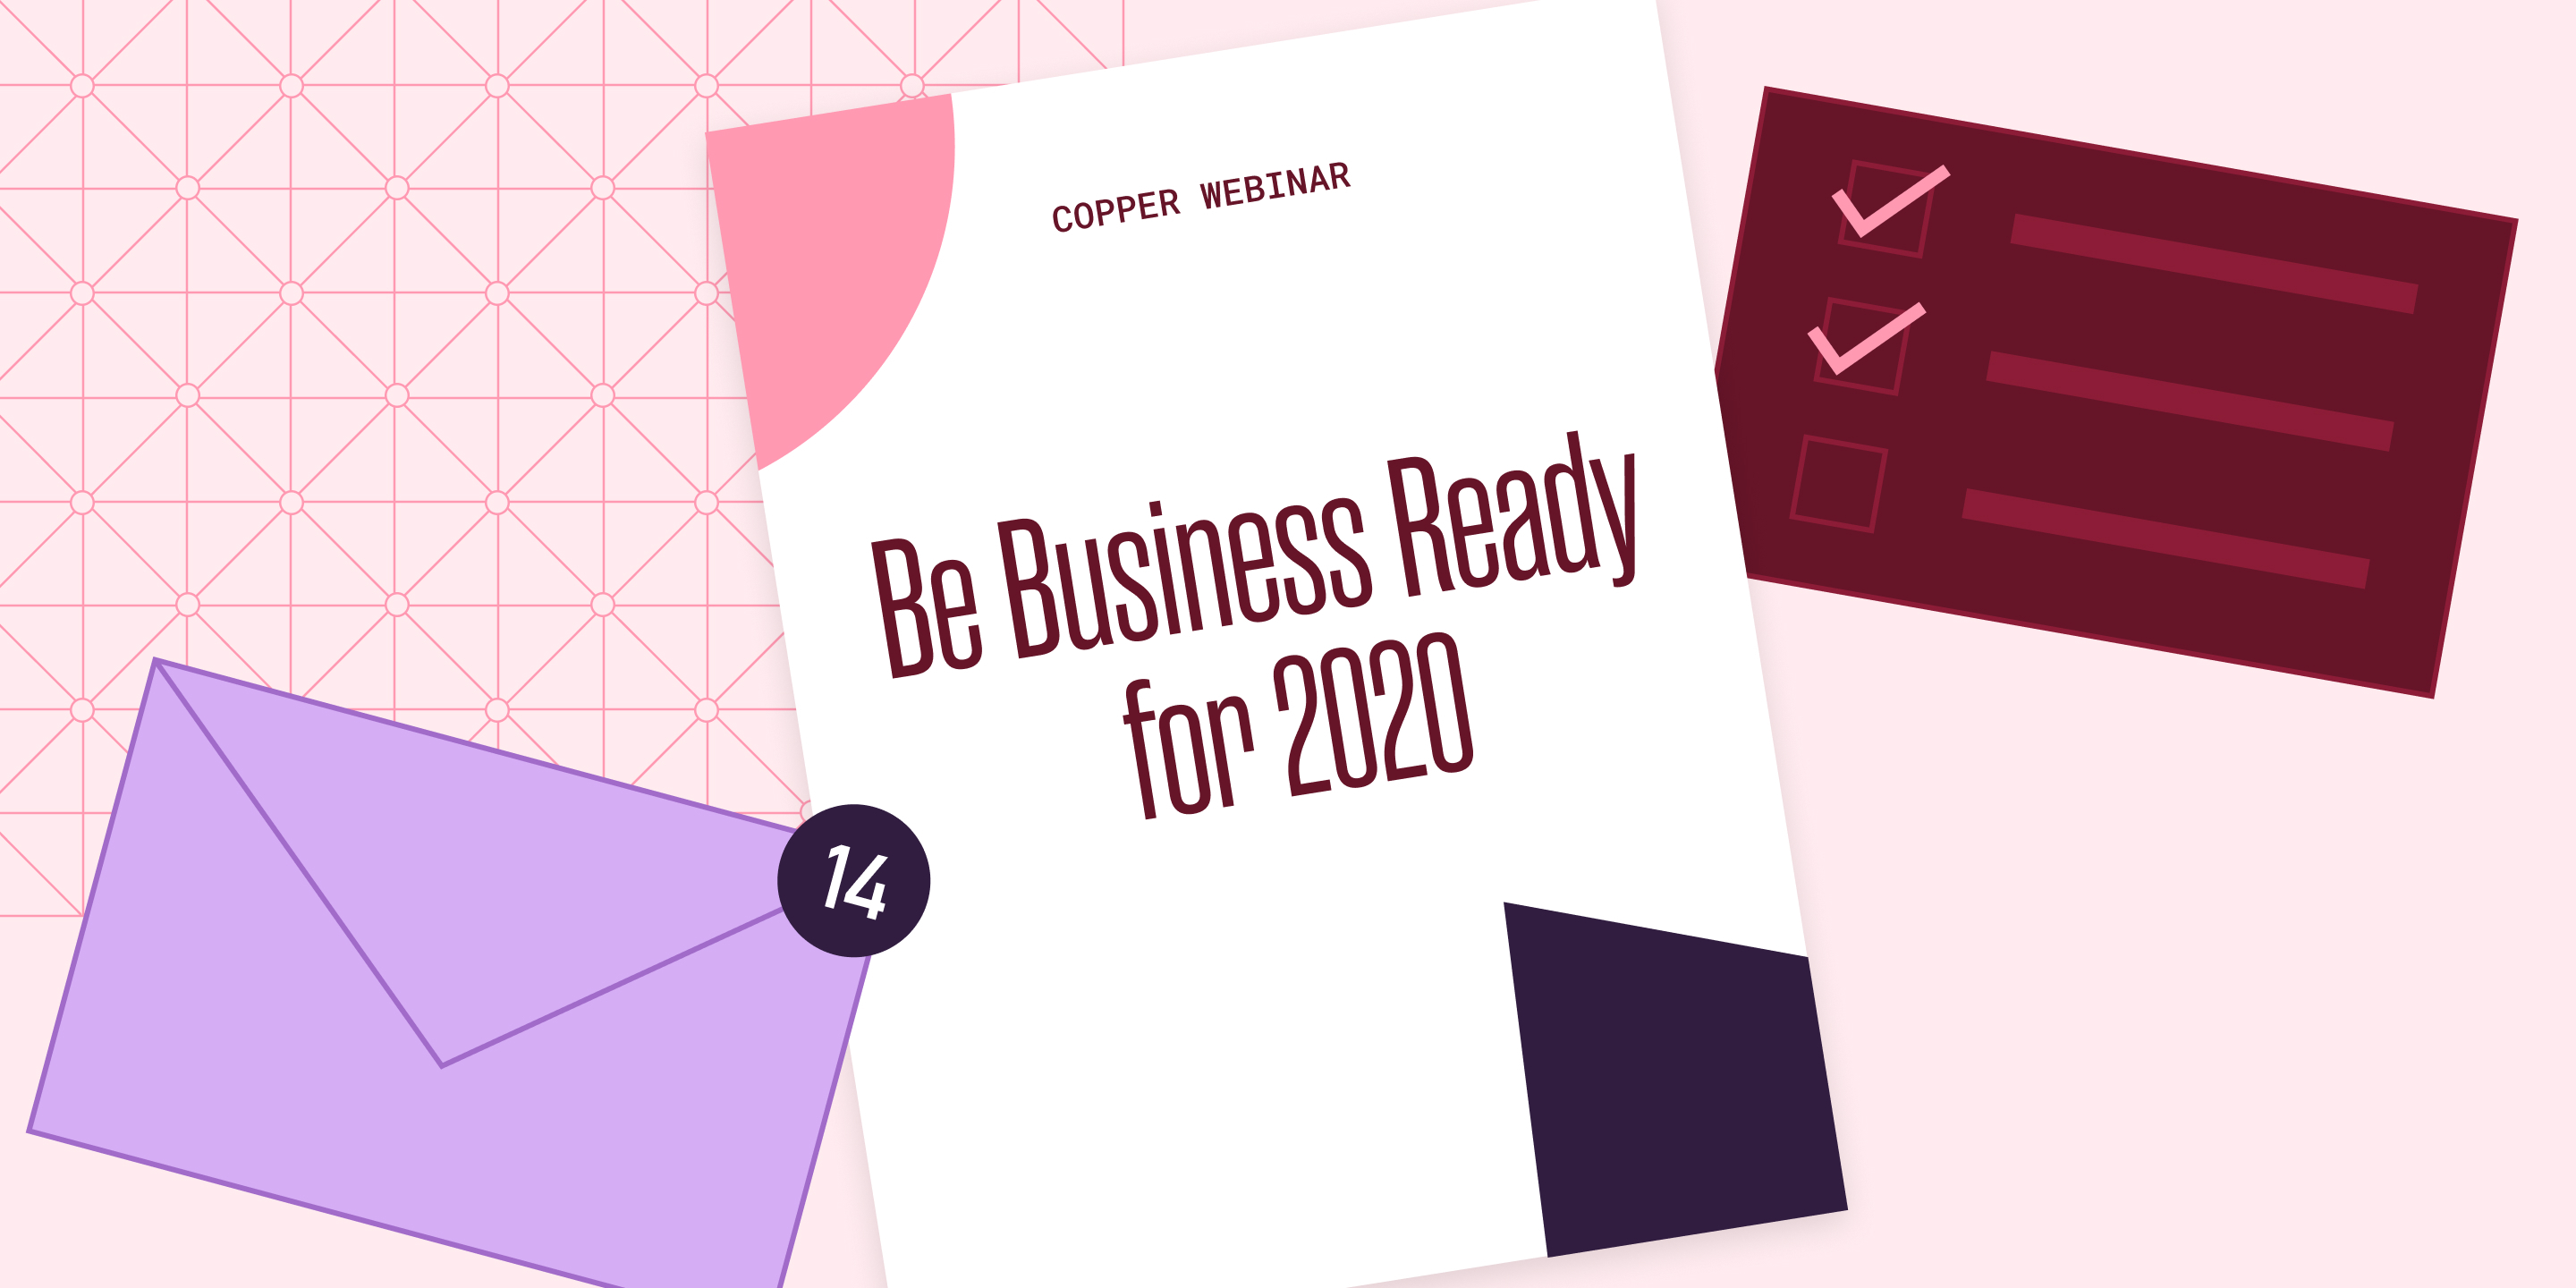 Be Business Ready for 2020